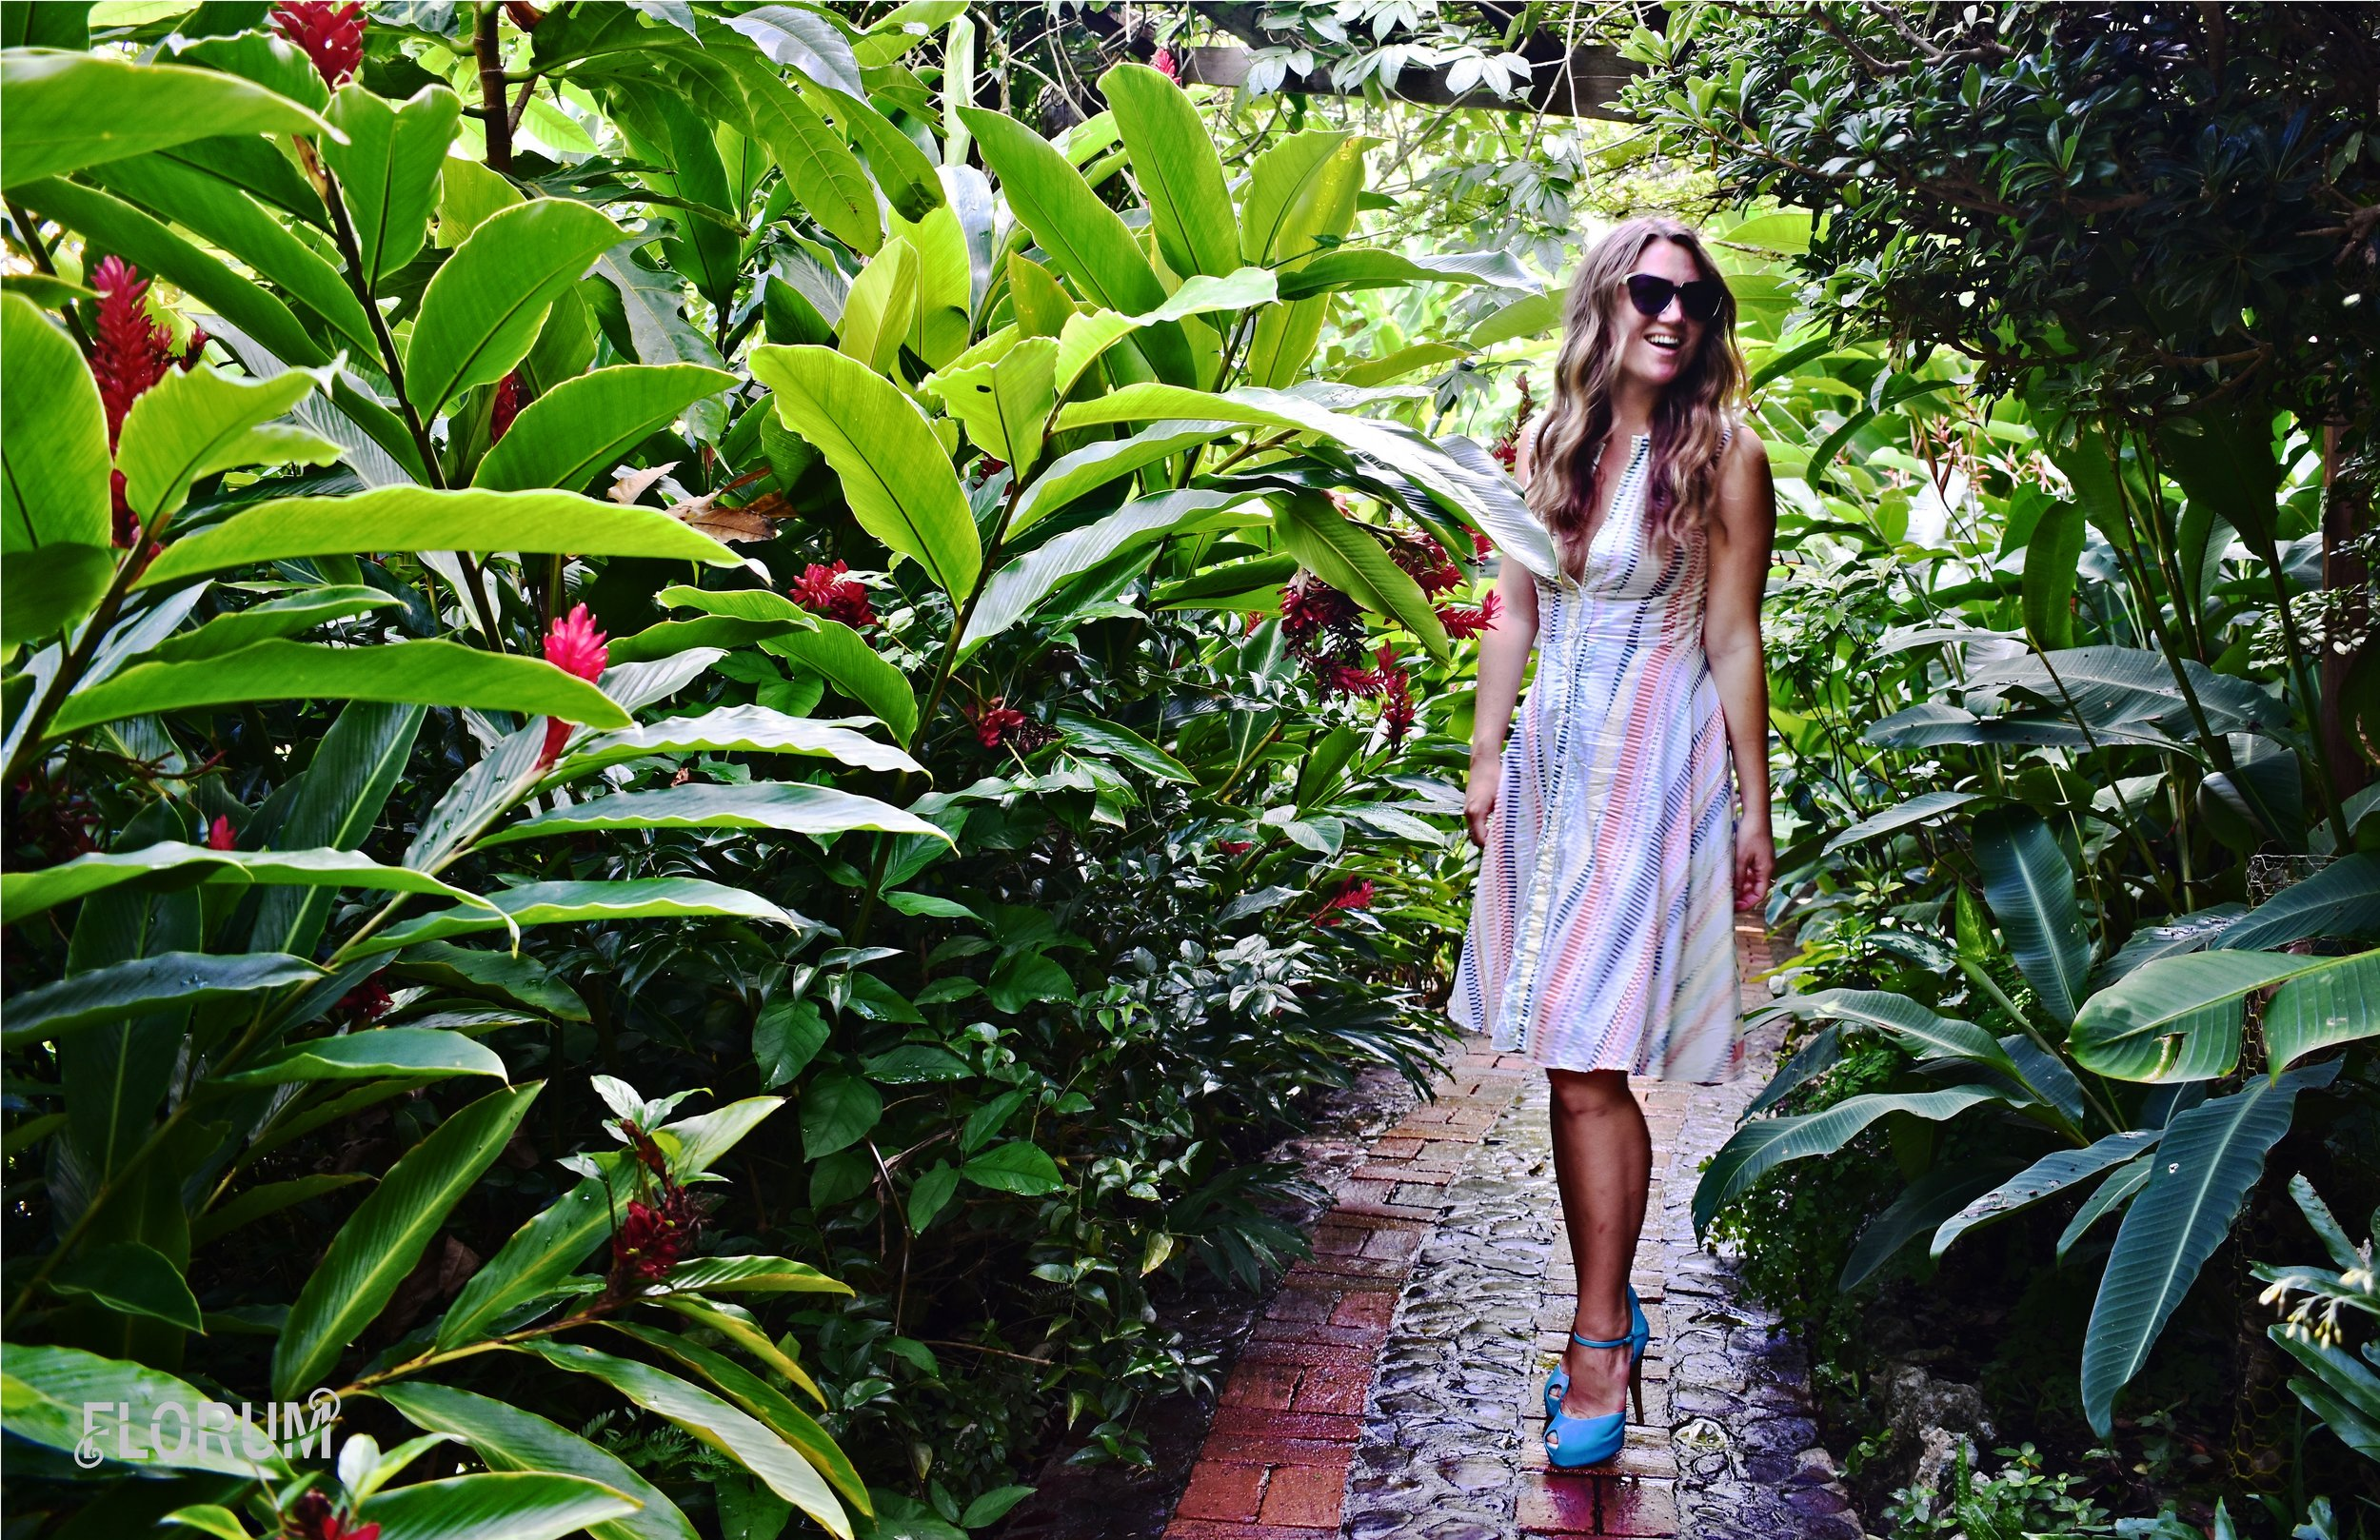 Just a short 15 minute walk from the ECO Lifestyle + Lodge is the beautiful Andromeda Gardens. For only a few Eastern Caribbean dollars I spent a few hours walking around and taking in the beautiful gardens and the flora.